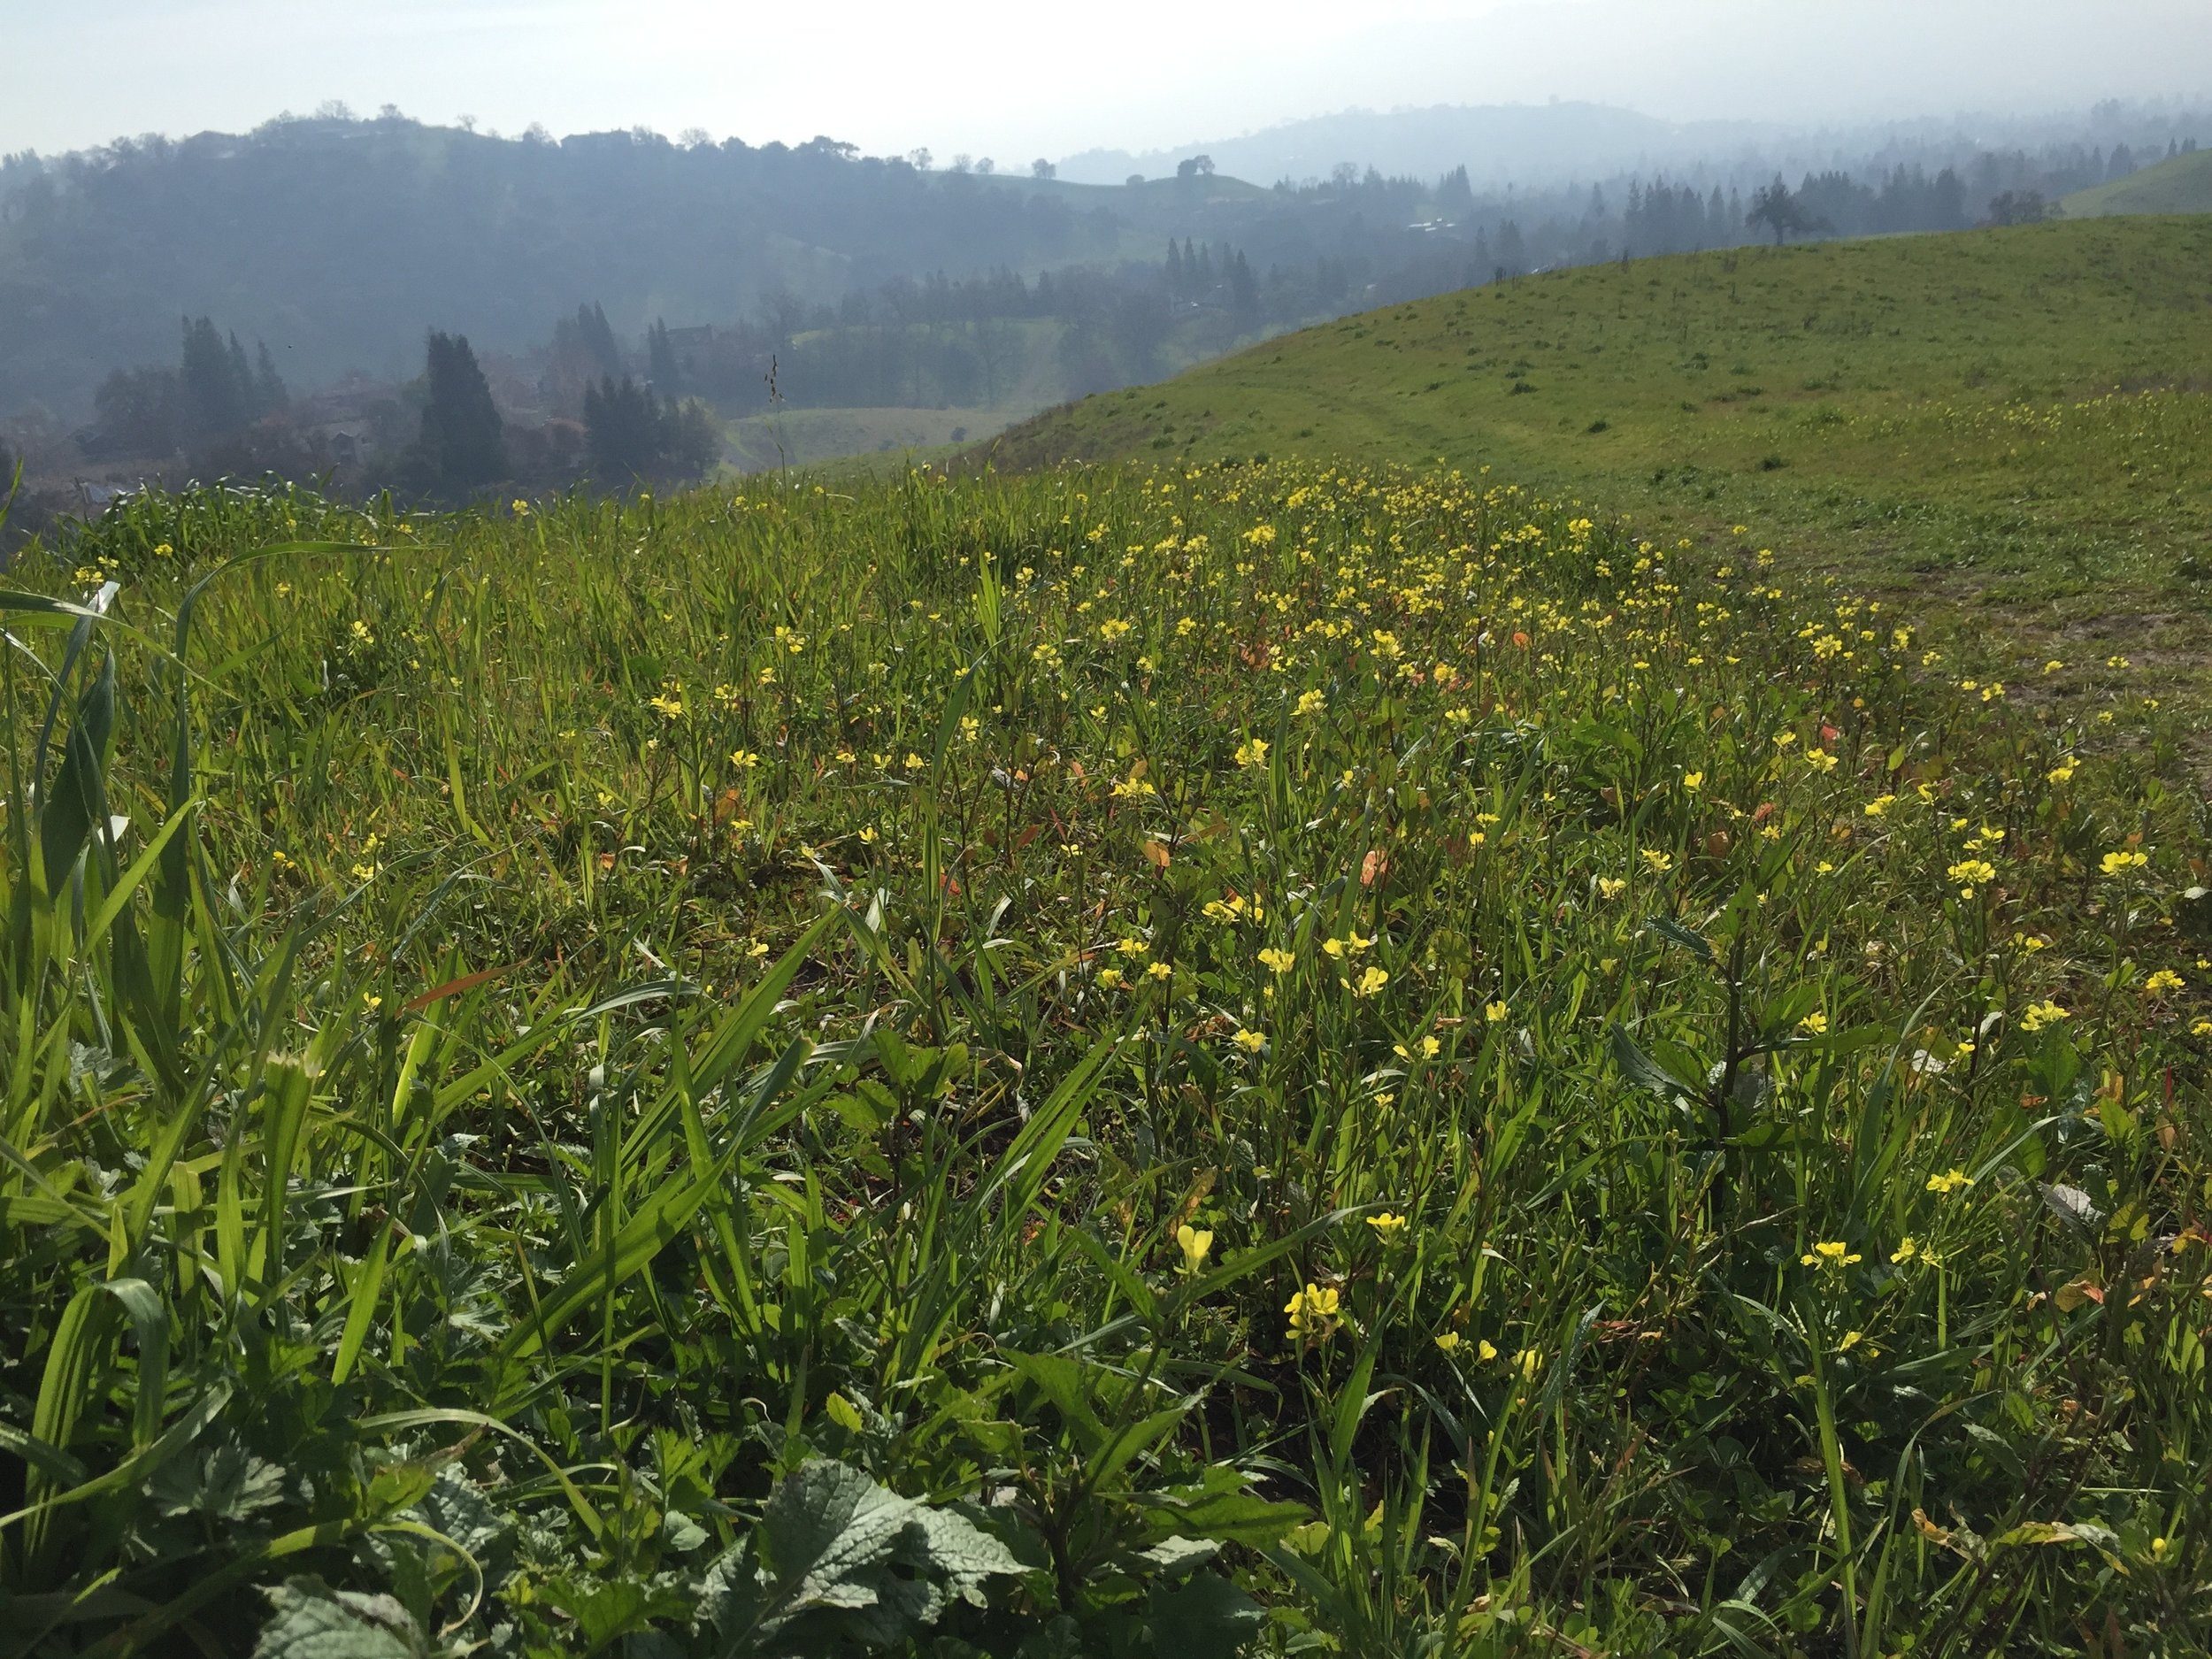 Wild mustard ( Brassica)  in the hills near my house